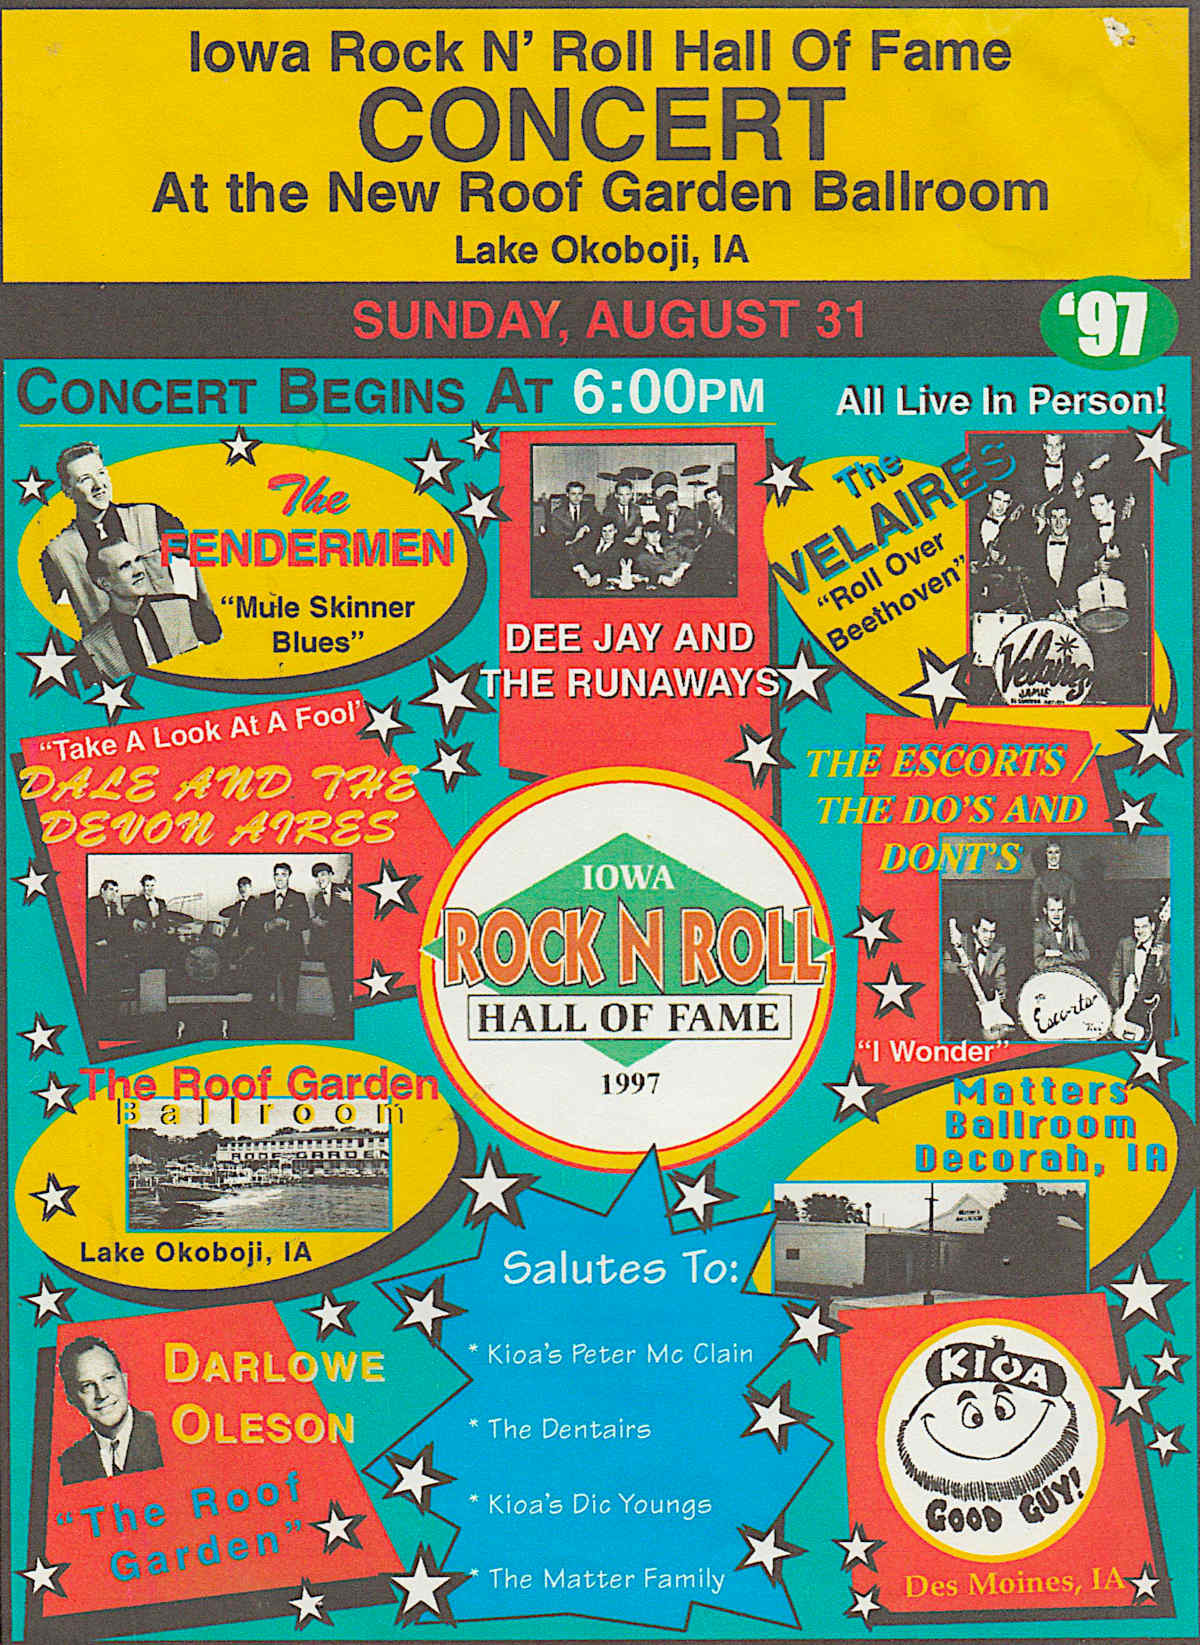 Iowa Rock N Roll Music Association's 1997 Hall of Fame Concert